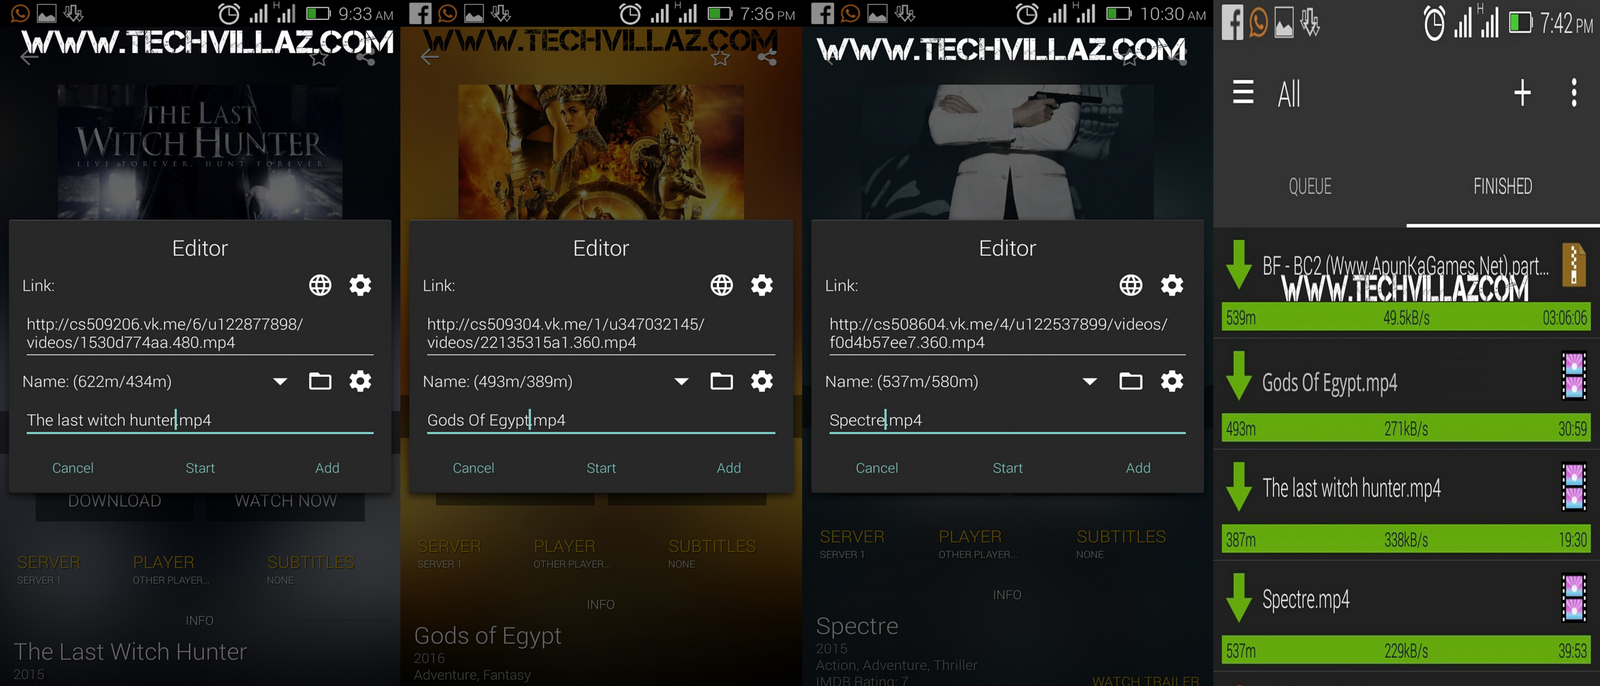 See Below Screenshots Of Showbox Movies I Have Easily Downloaded Using Adm  With No Waste Of